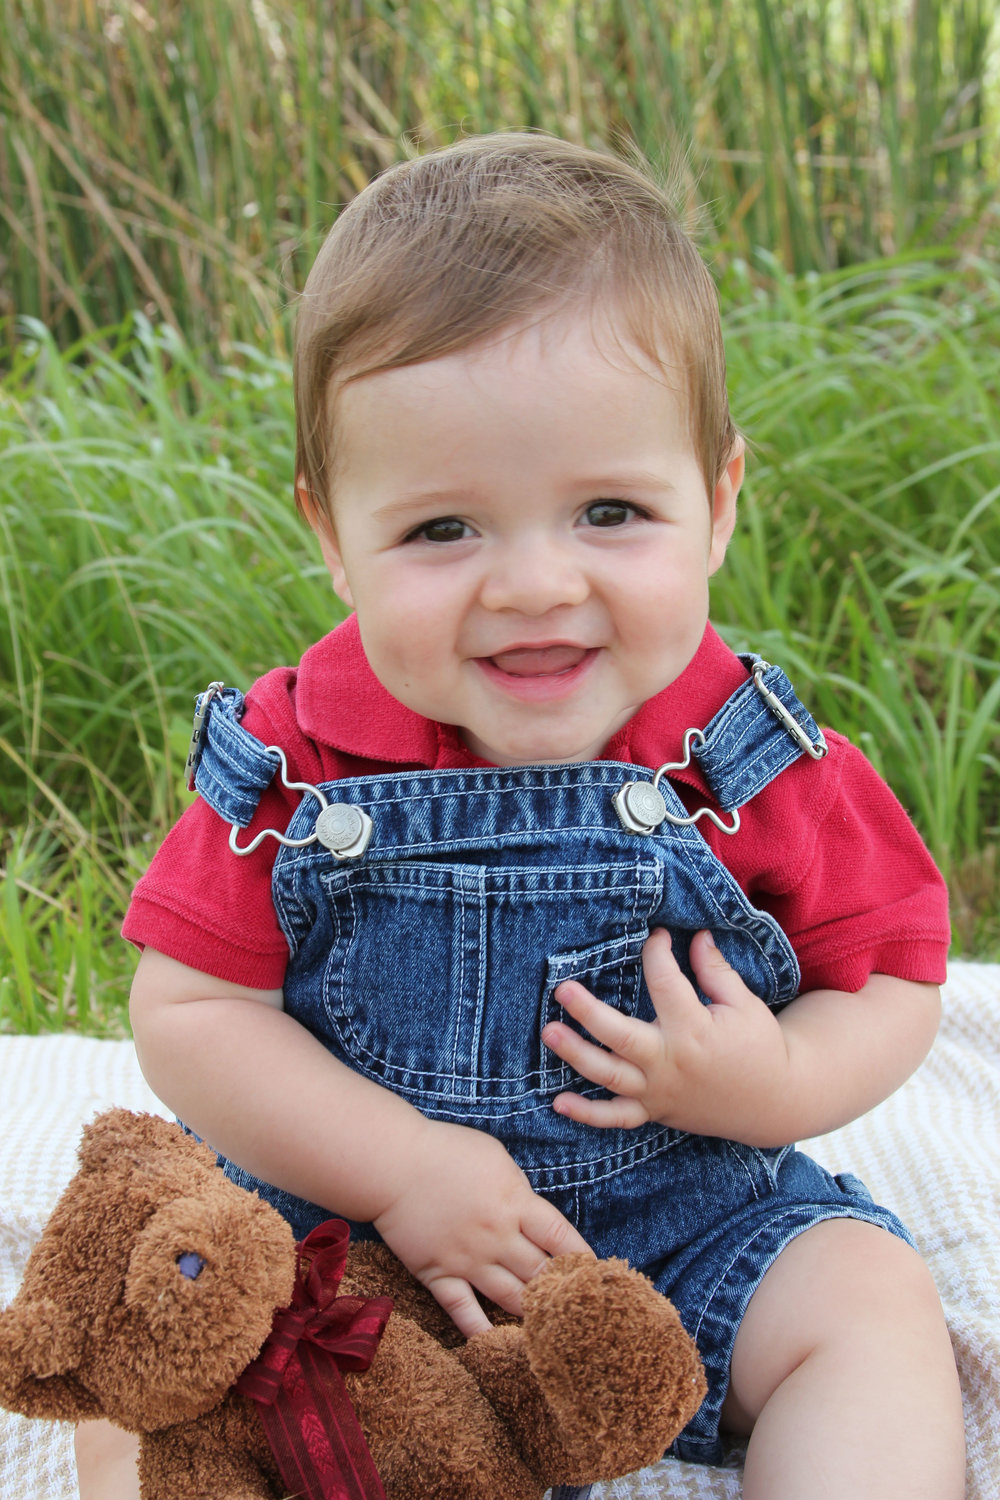 6-14-2012 - Father's Day Photos - 16.jpg